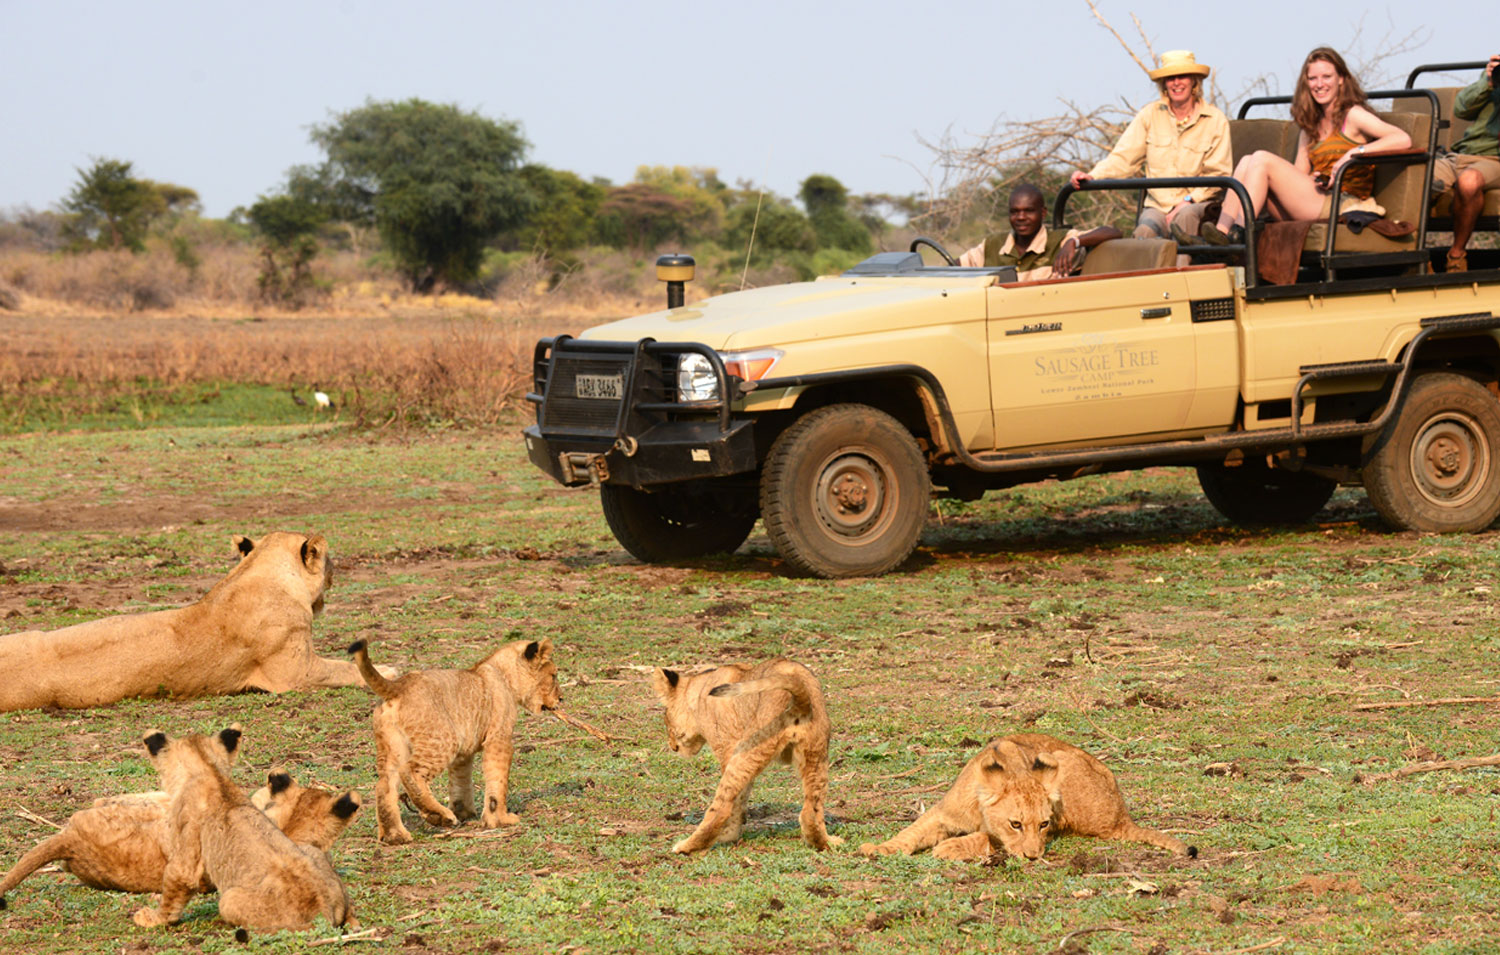 Private guiding safari experience